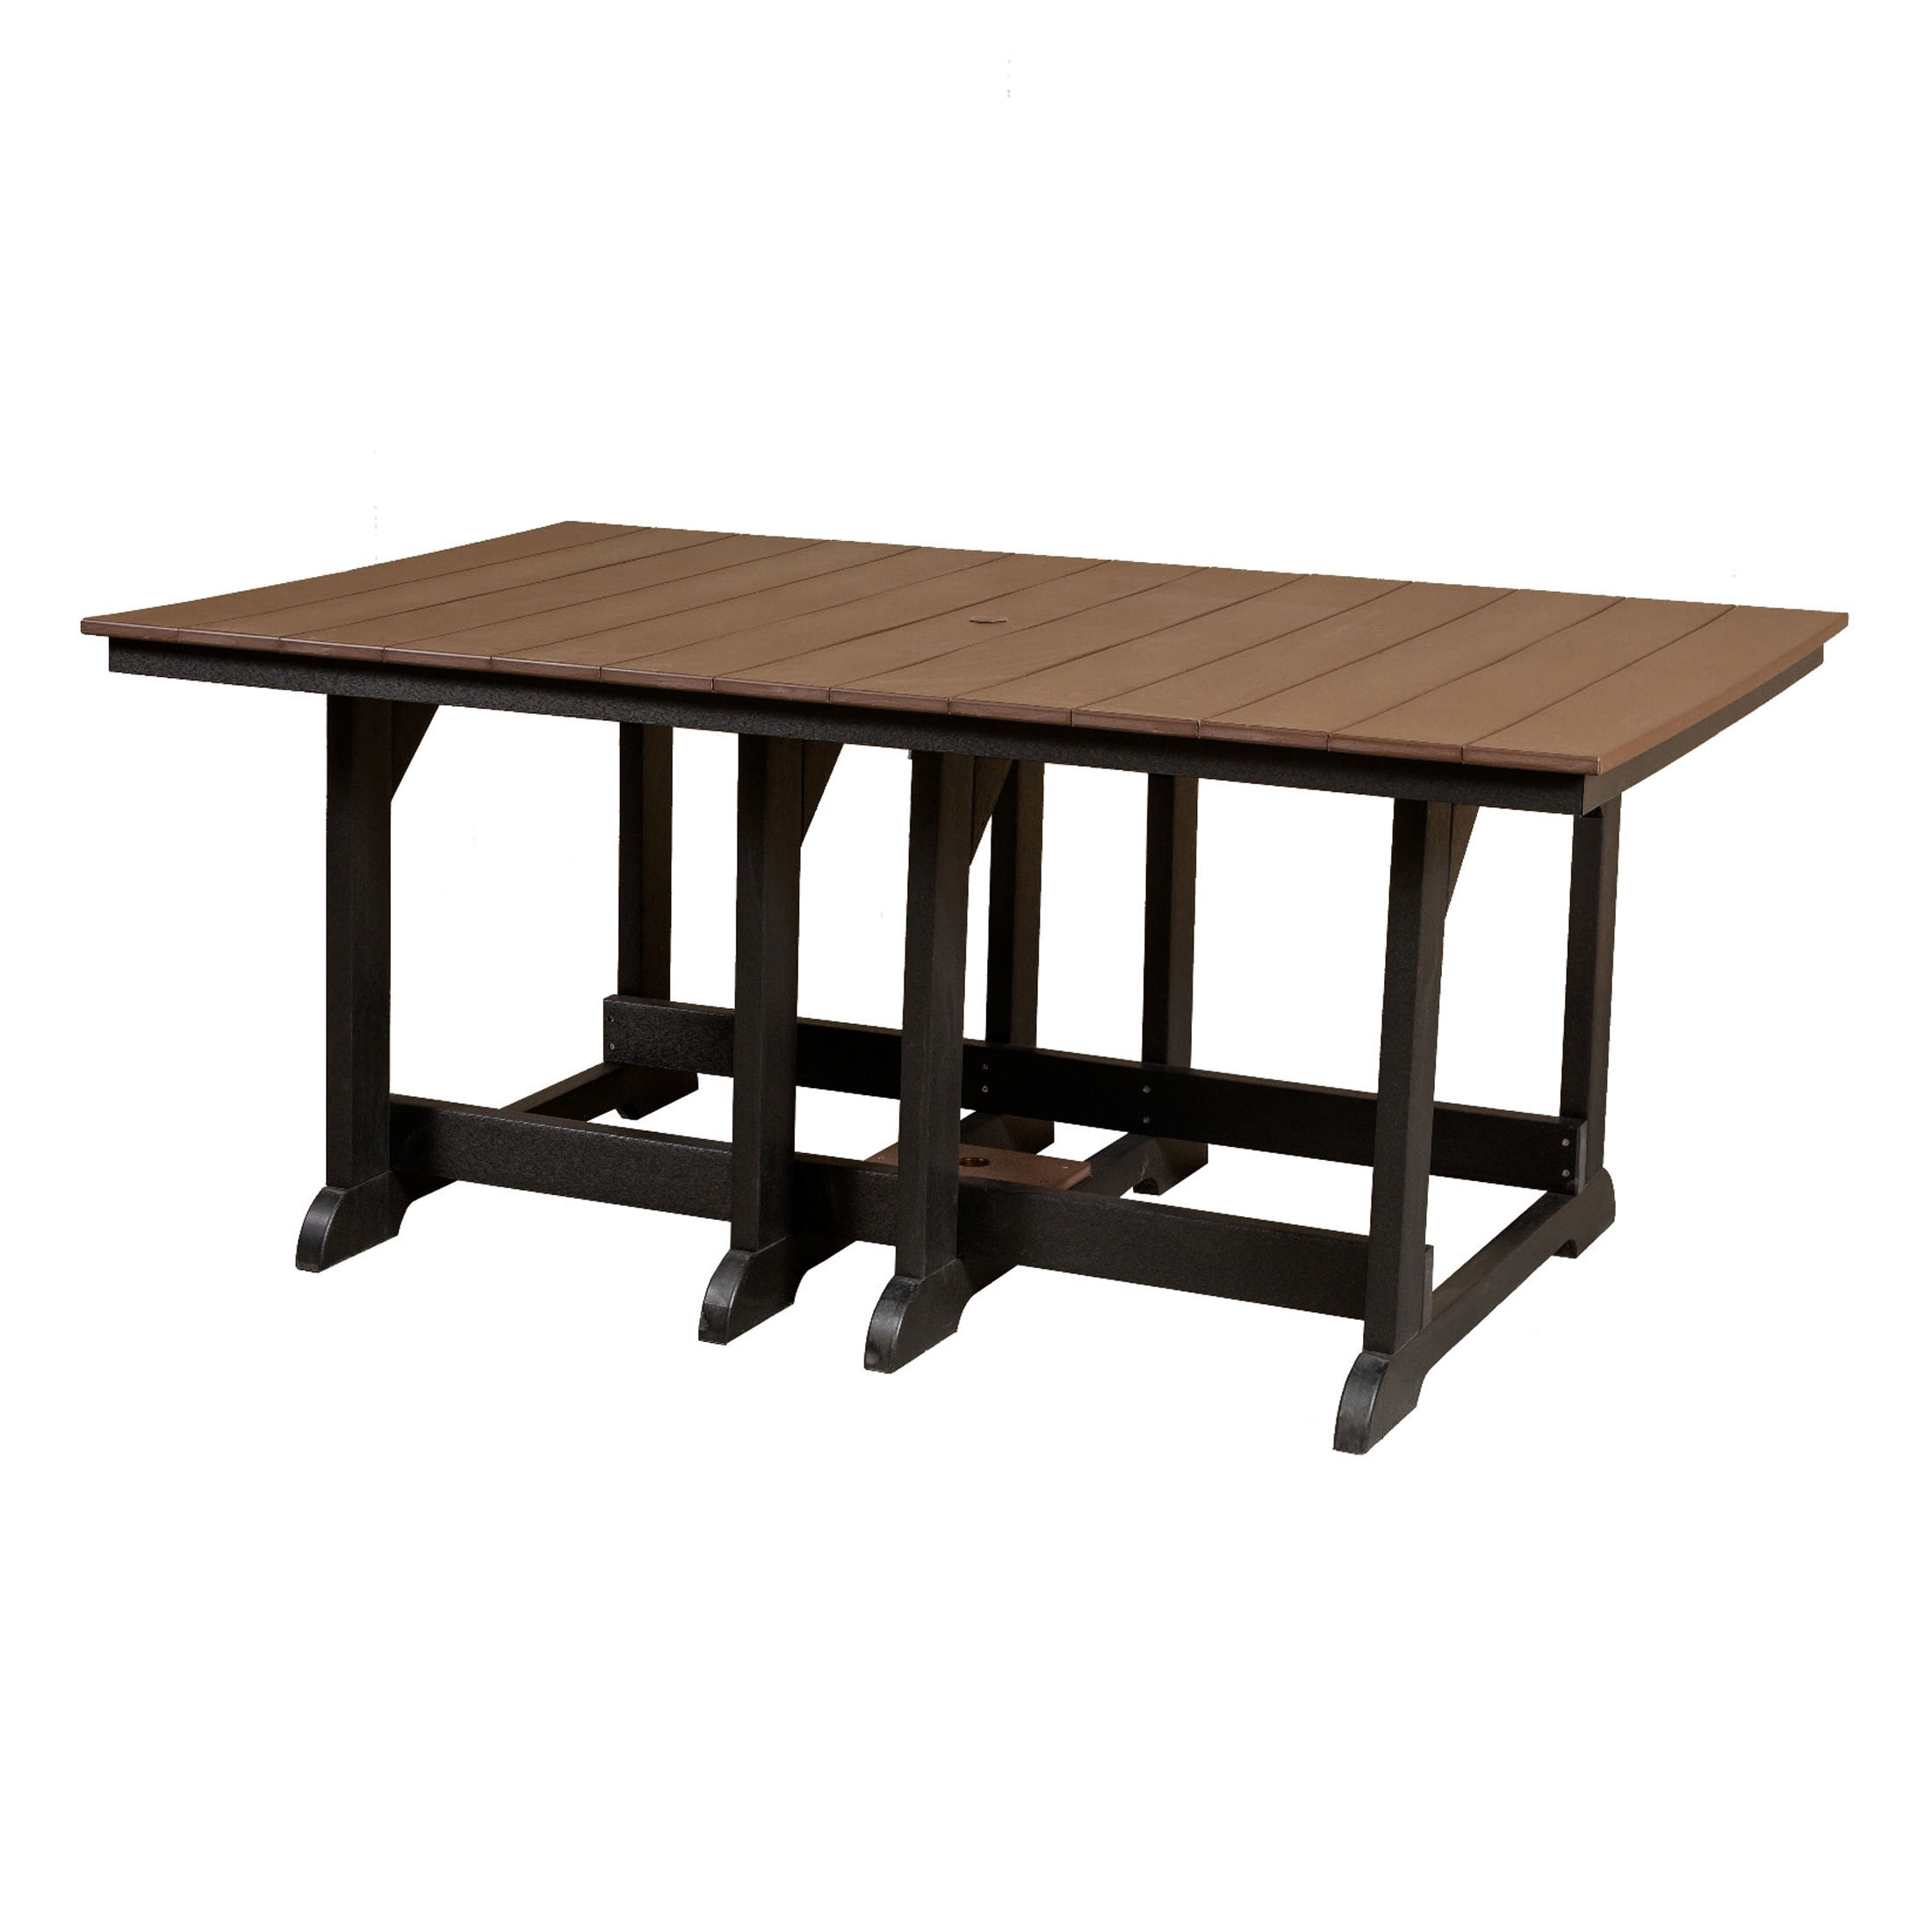 Little Cottage Heritage Table 44 in x 72 in